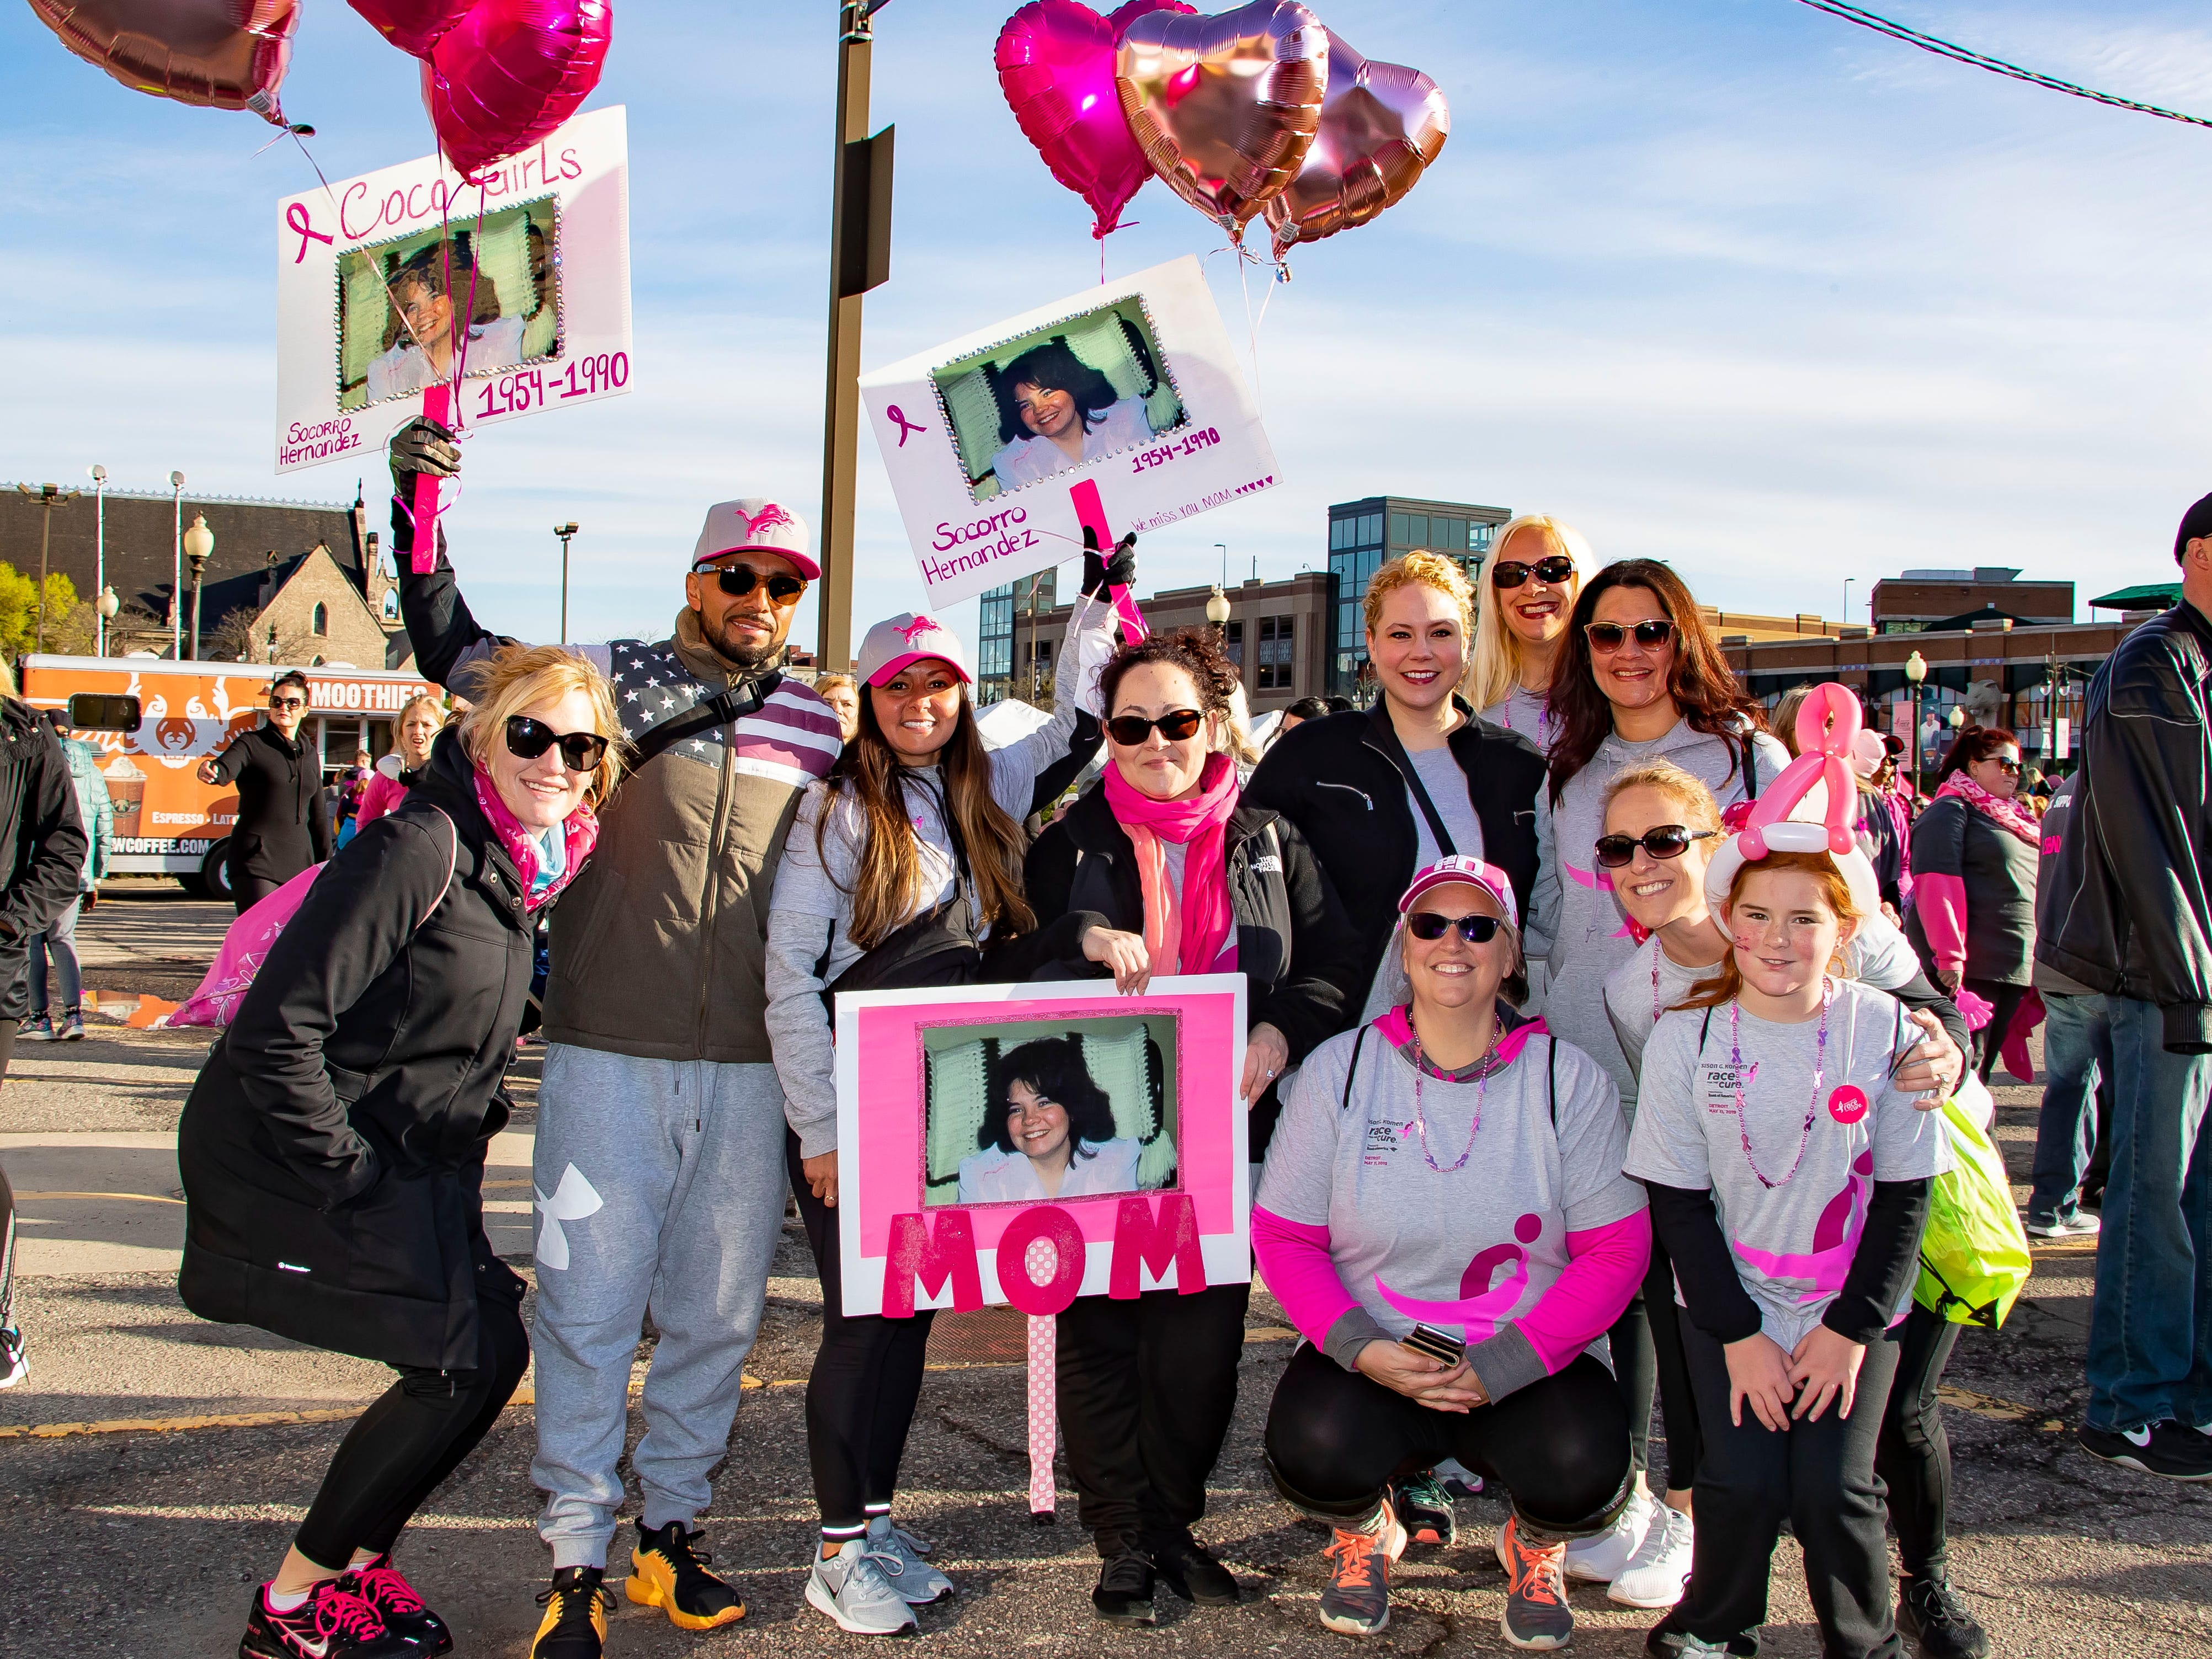 The Detroit family of Coco Hernandez, who lost her battle with cancer in 1990, pose for a picture during the Susan G. Komen Race for the Cure at Comerica Park in Detroit Michigan. The family has been coming to this event annually since 2001. (Photo by Dave Reginek-Special to Detroit News)